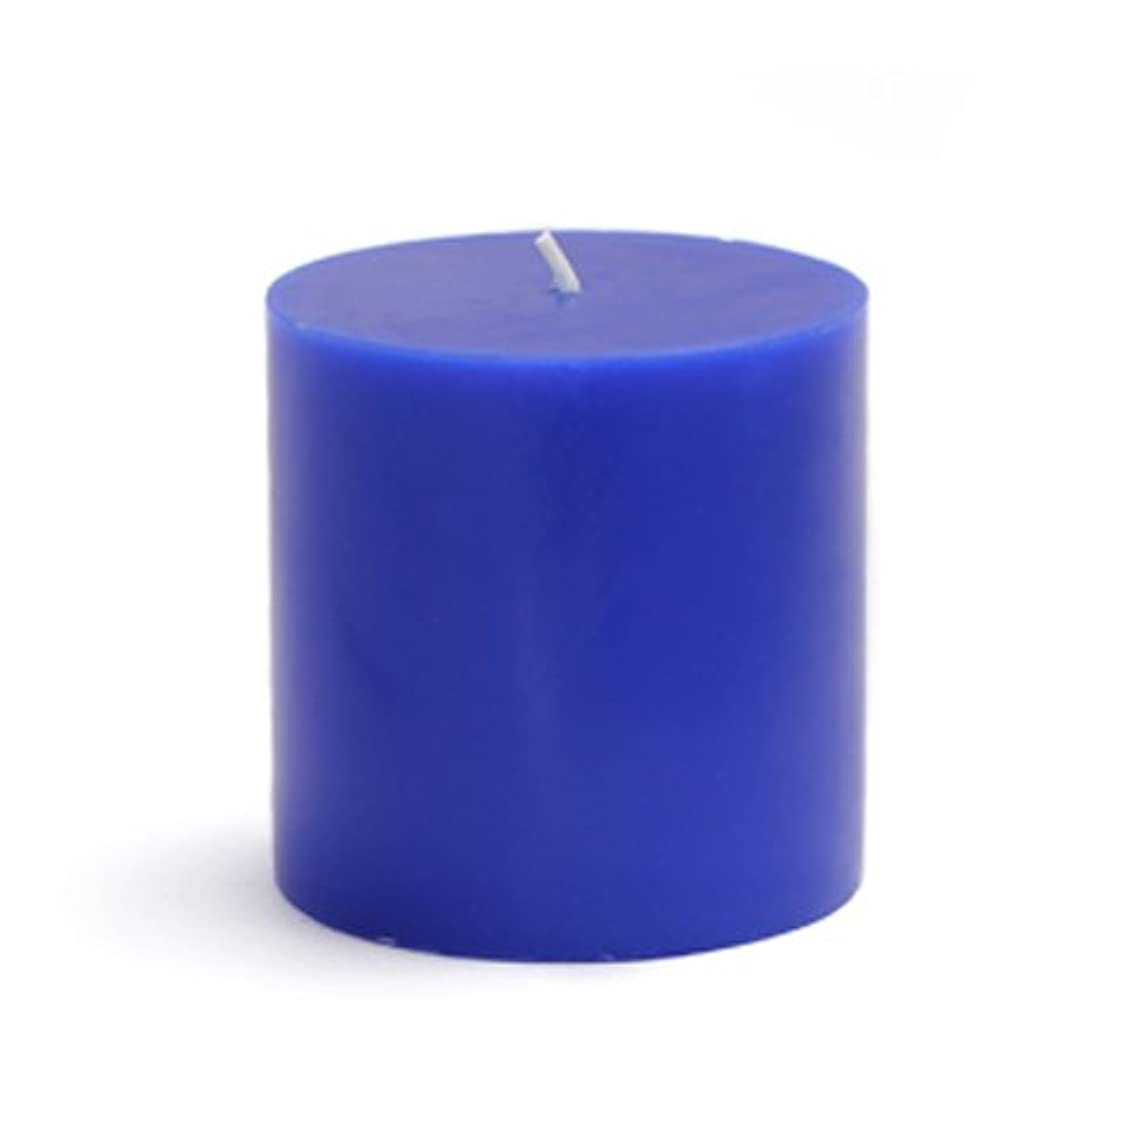 チャンバートレーニング解説Zest Candle CPZ-077-12 3 x 3 in. Blue Pillar Candles -12pcs-Case- Bulk